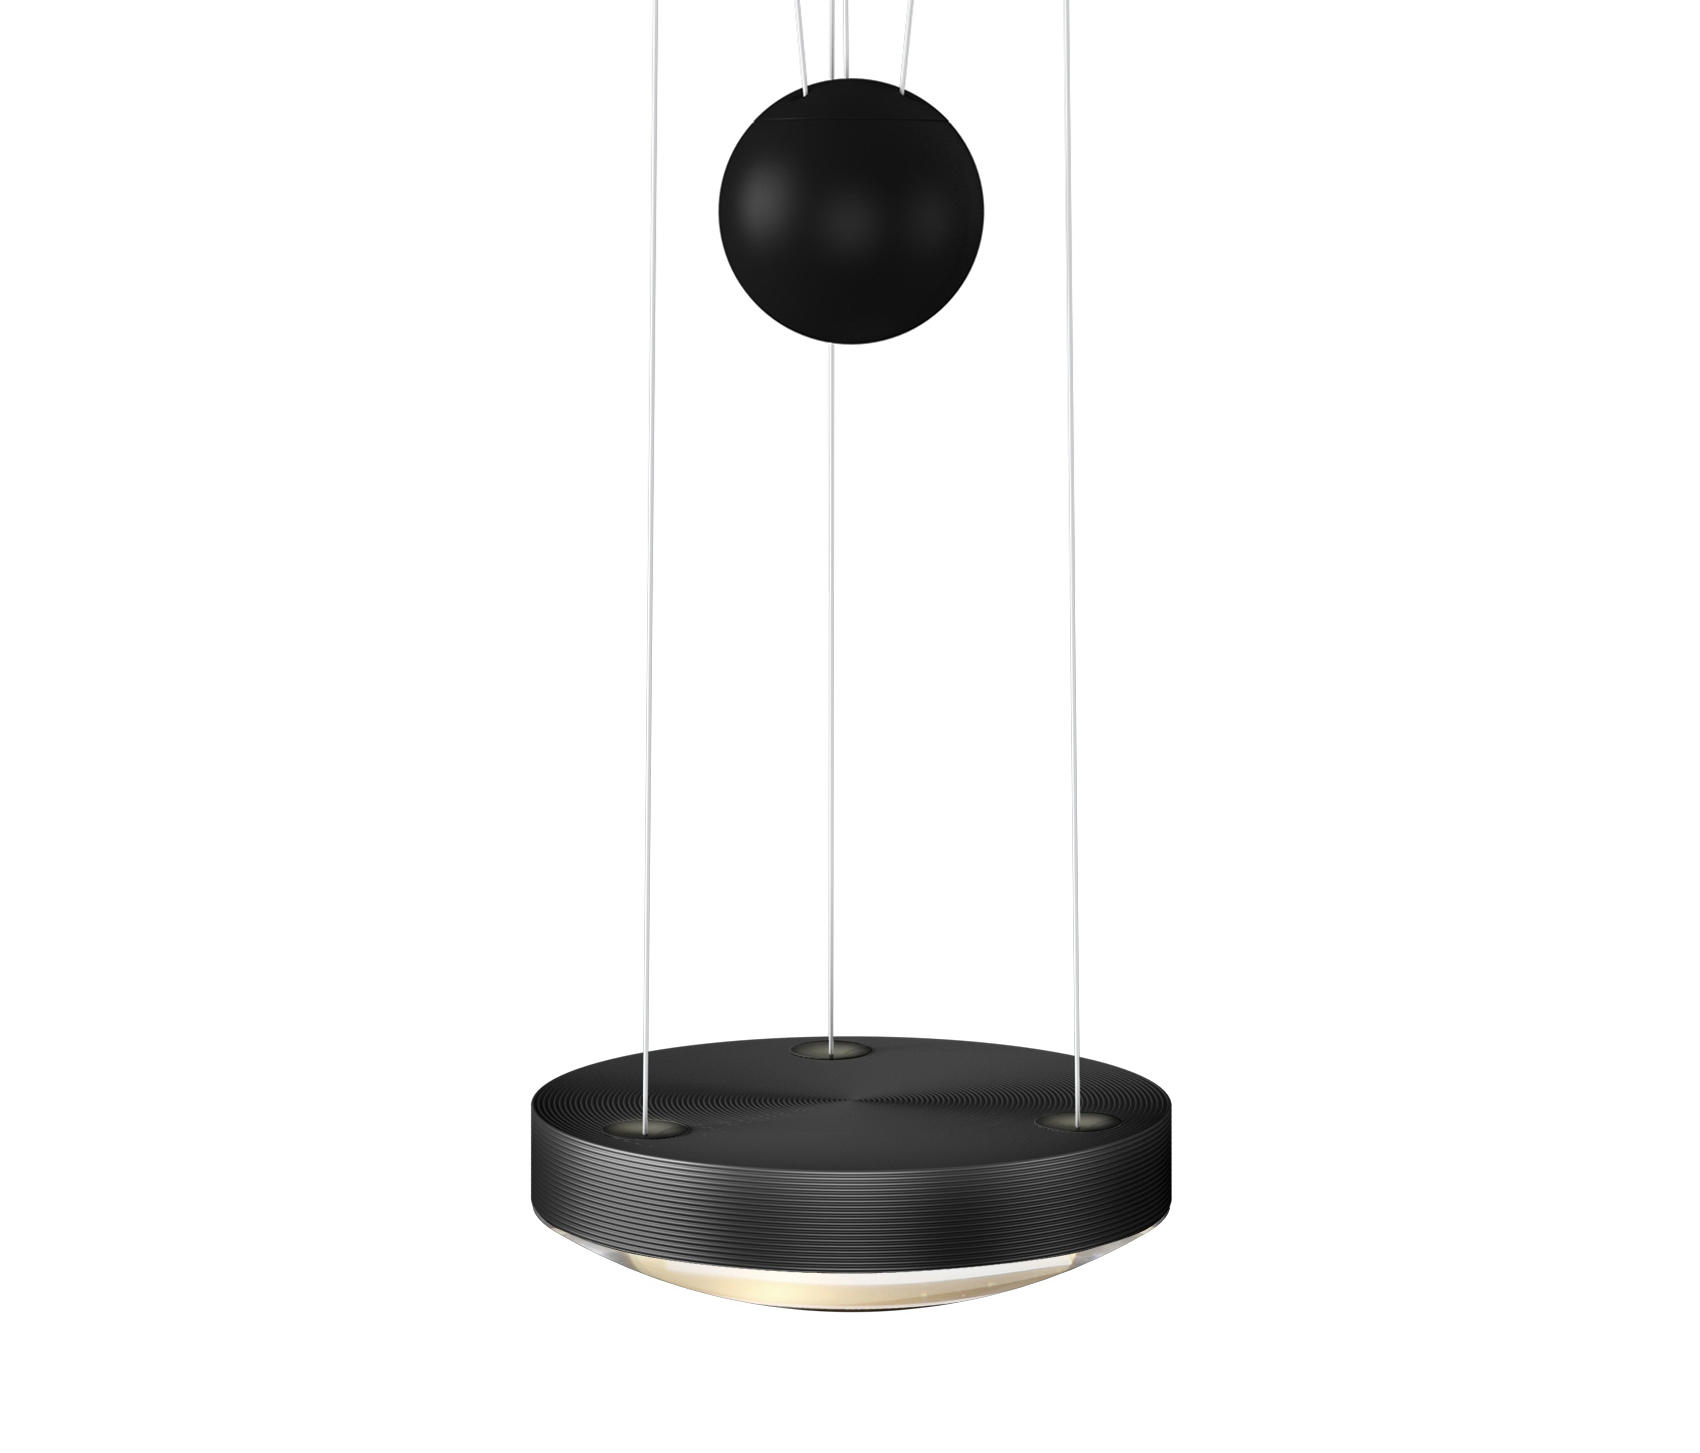 globe black general lighting from tobias grau architonic. Black Bedroom Furniture Sets. Home Design Ideas